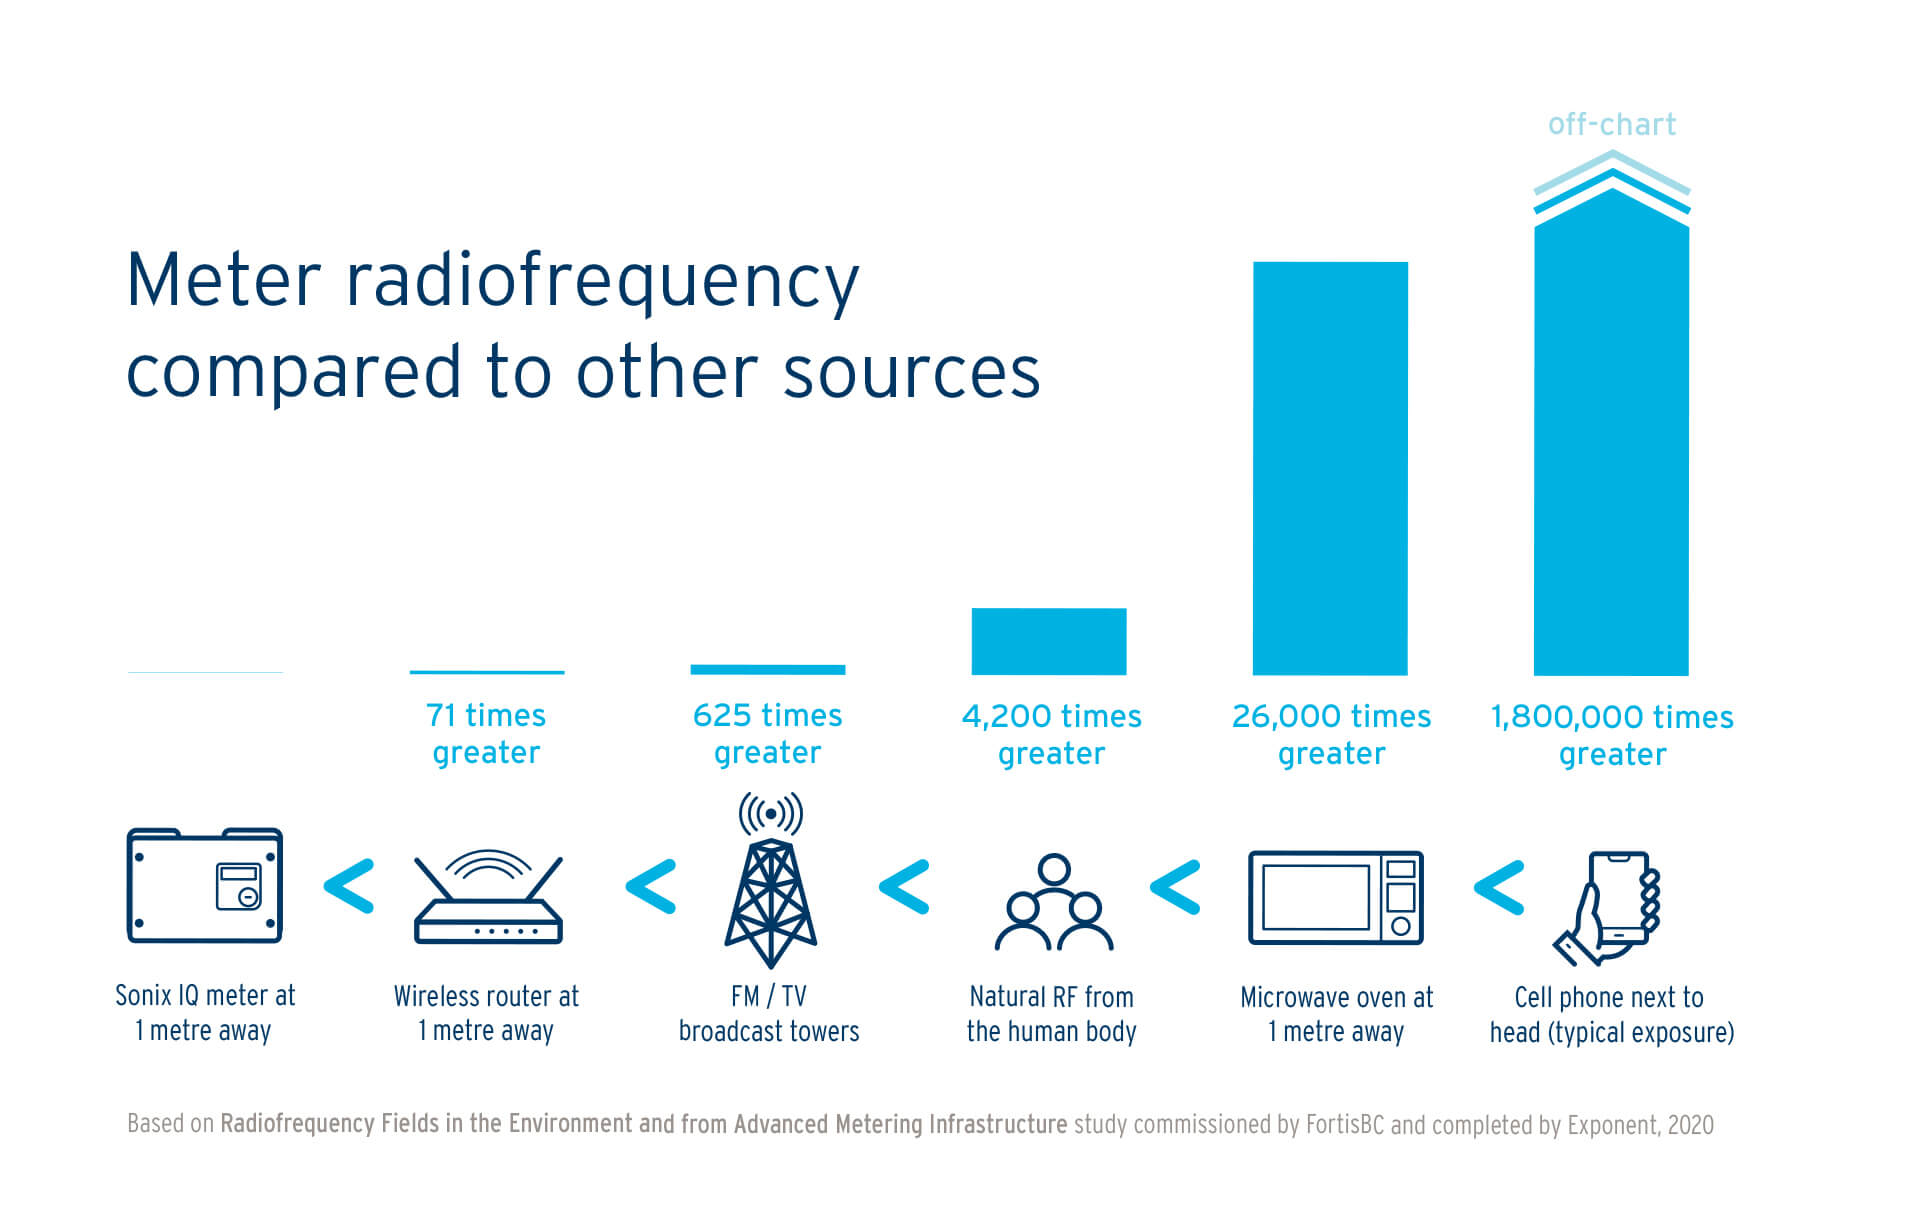 Meter radiofrequency compared to other sources.